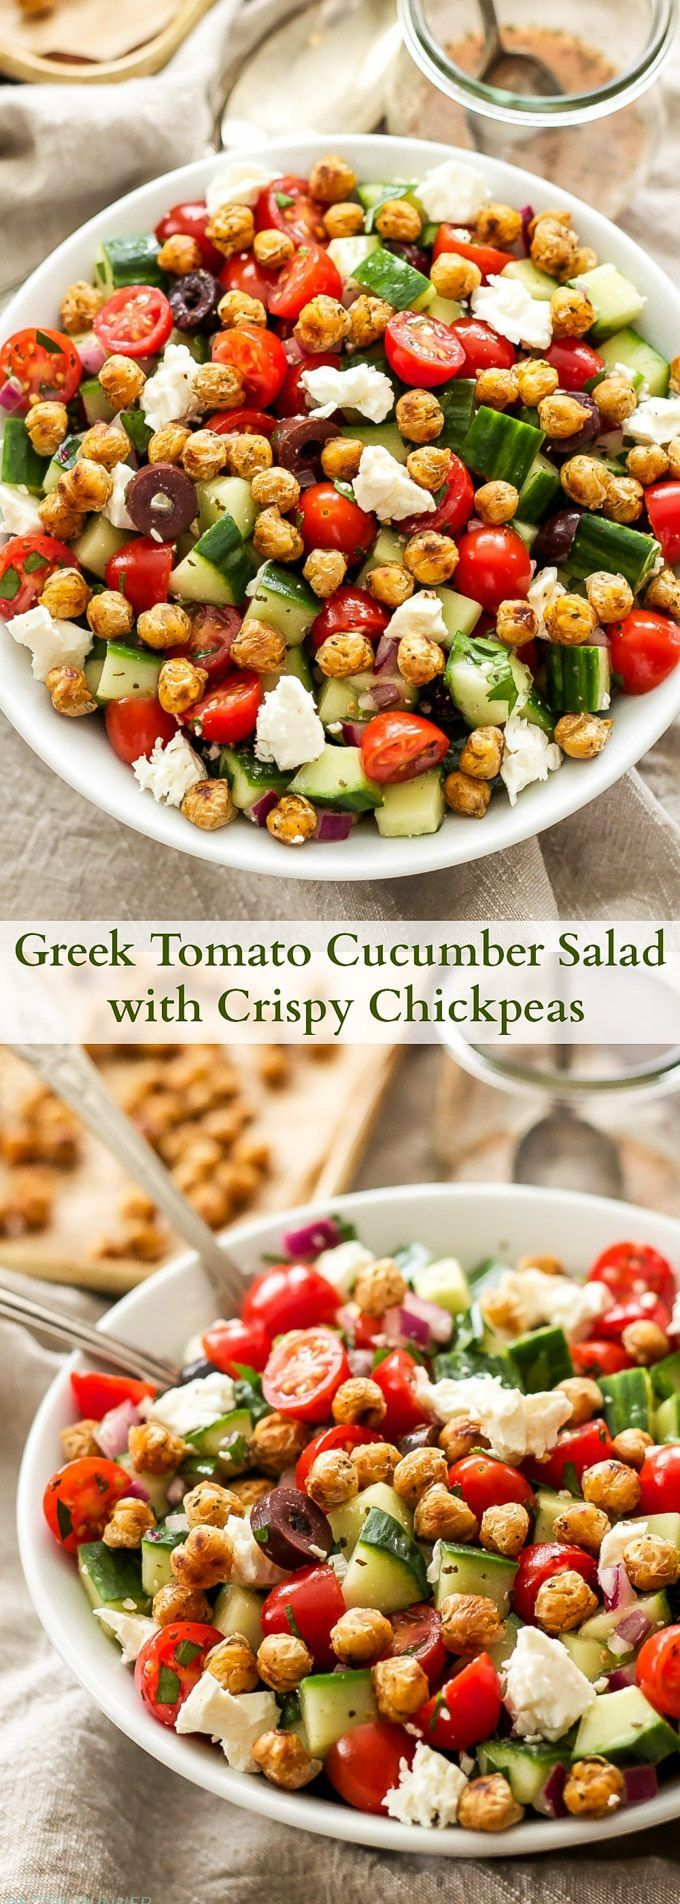 Crispy, pan-sautéed chickpeas add flavor, crunch and protein to this delicious, gluten-free Greek Tomato Cucumber Salad with Crispy Chickpeas!